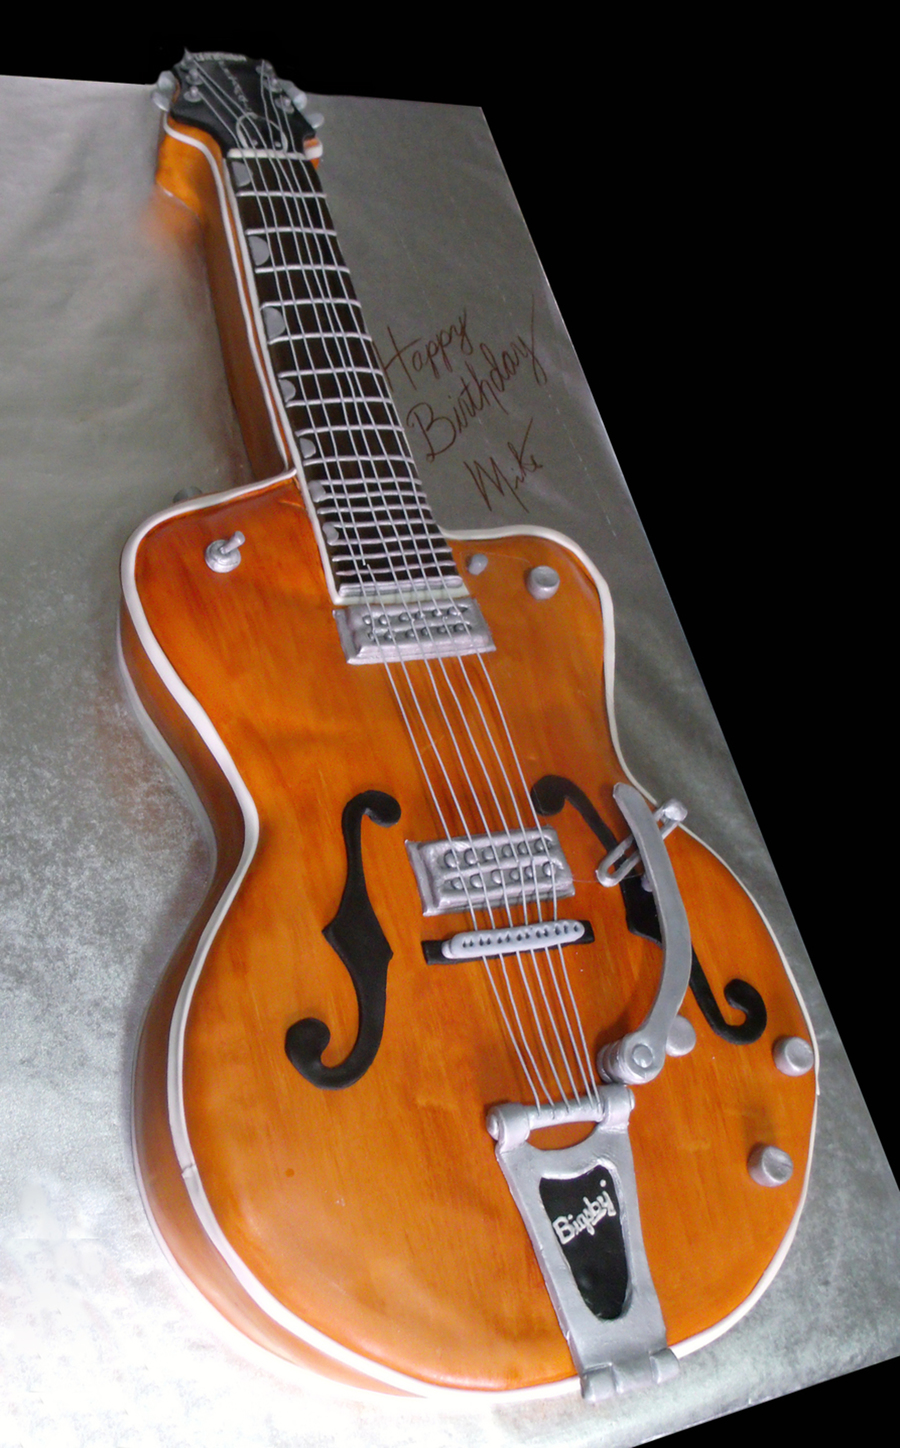 Gretsch Guitar Cake on Cake Central